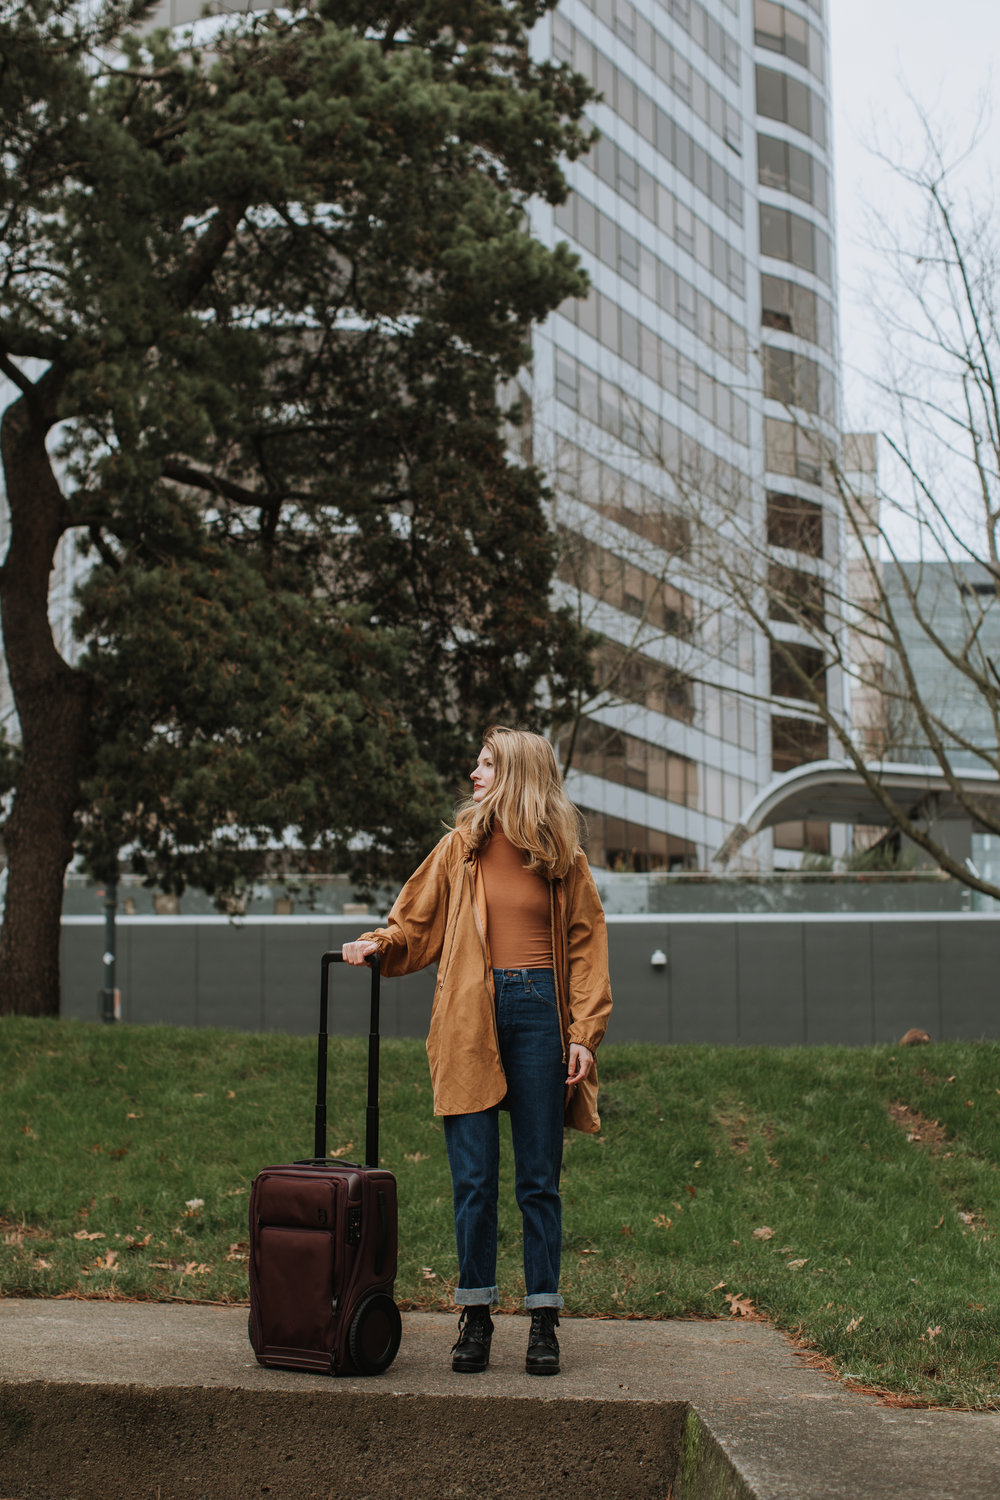 leah flores commercial photography travel gro luggage